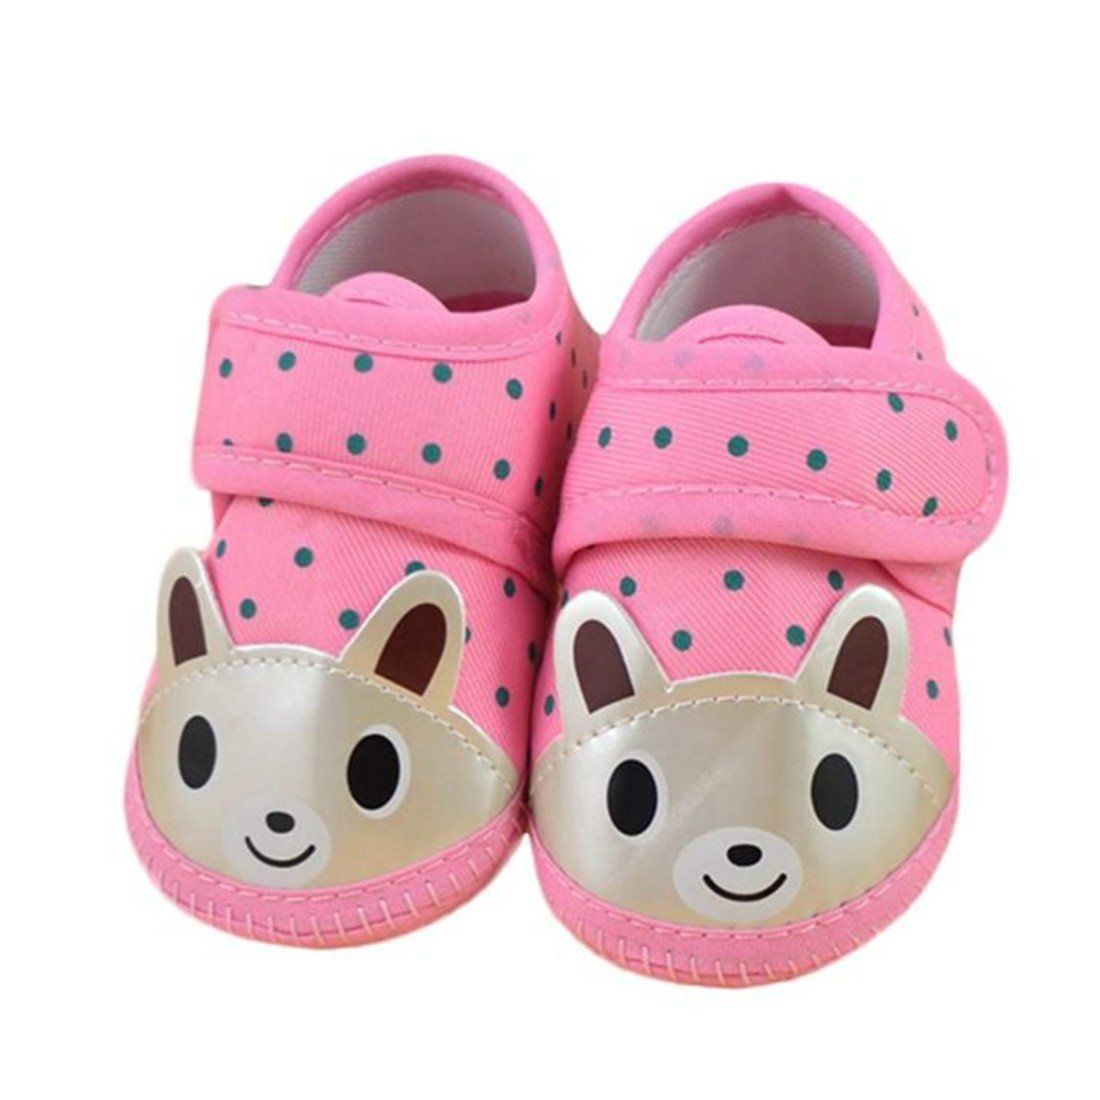 Baby Infant Kids Girl Cute Soft Sole Crib Toddler Newborn Shoes Amiley Baby boots